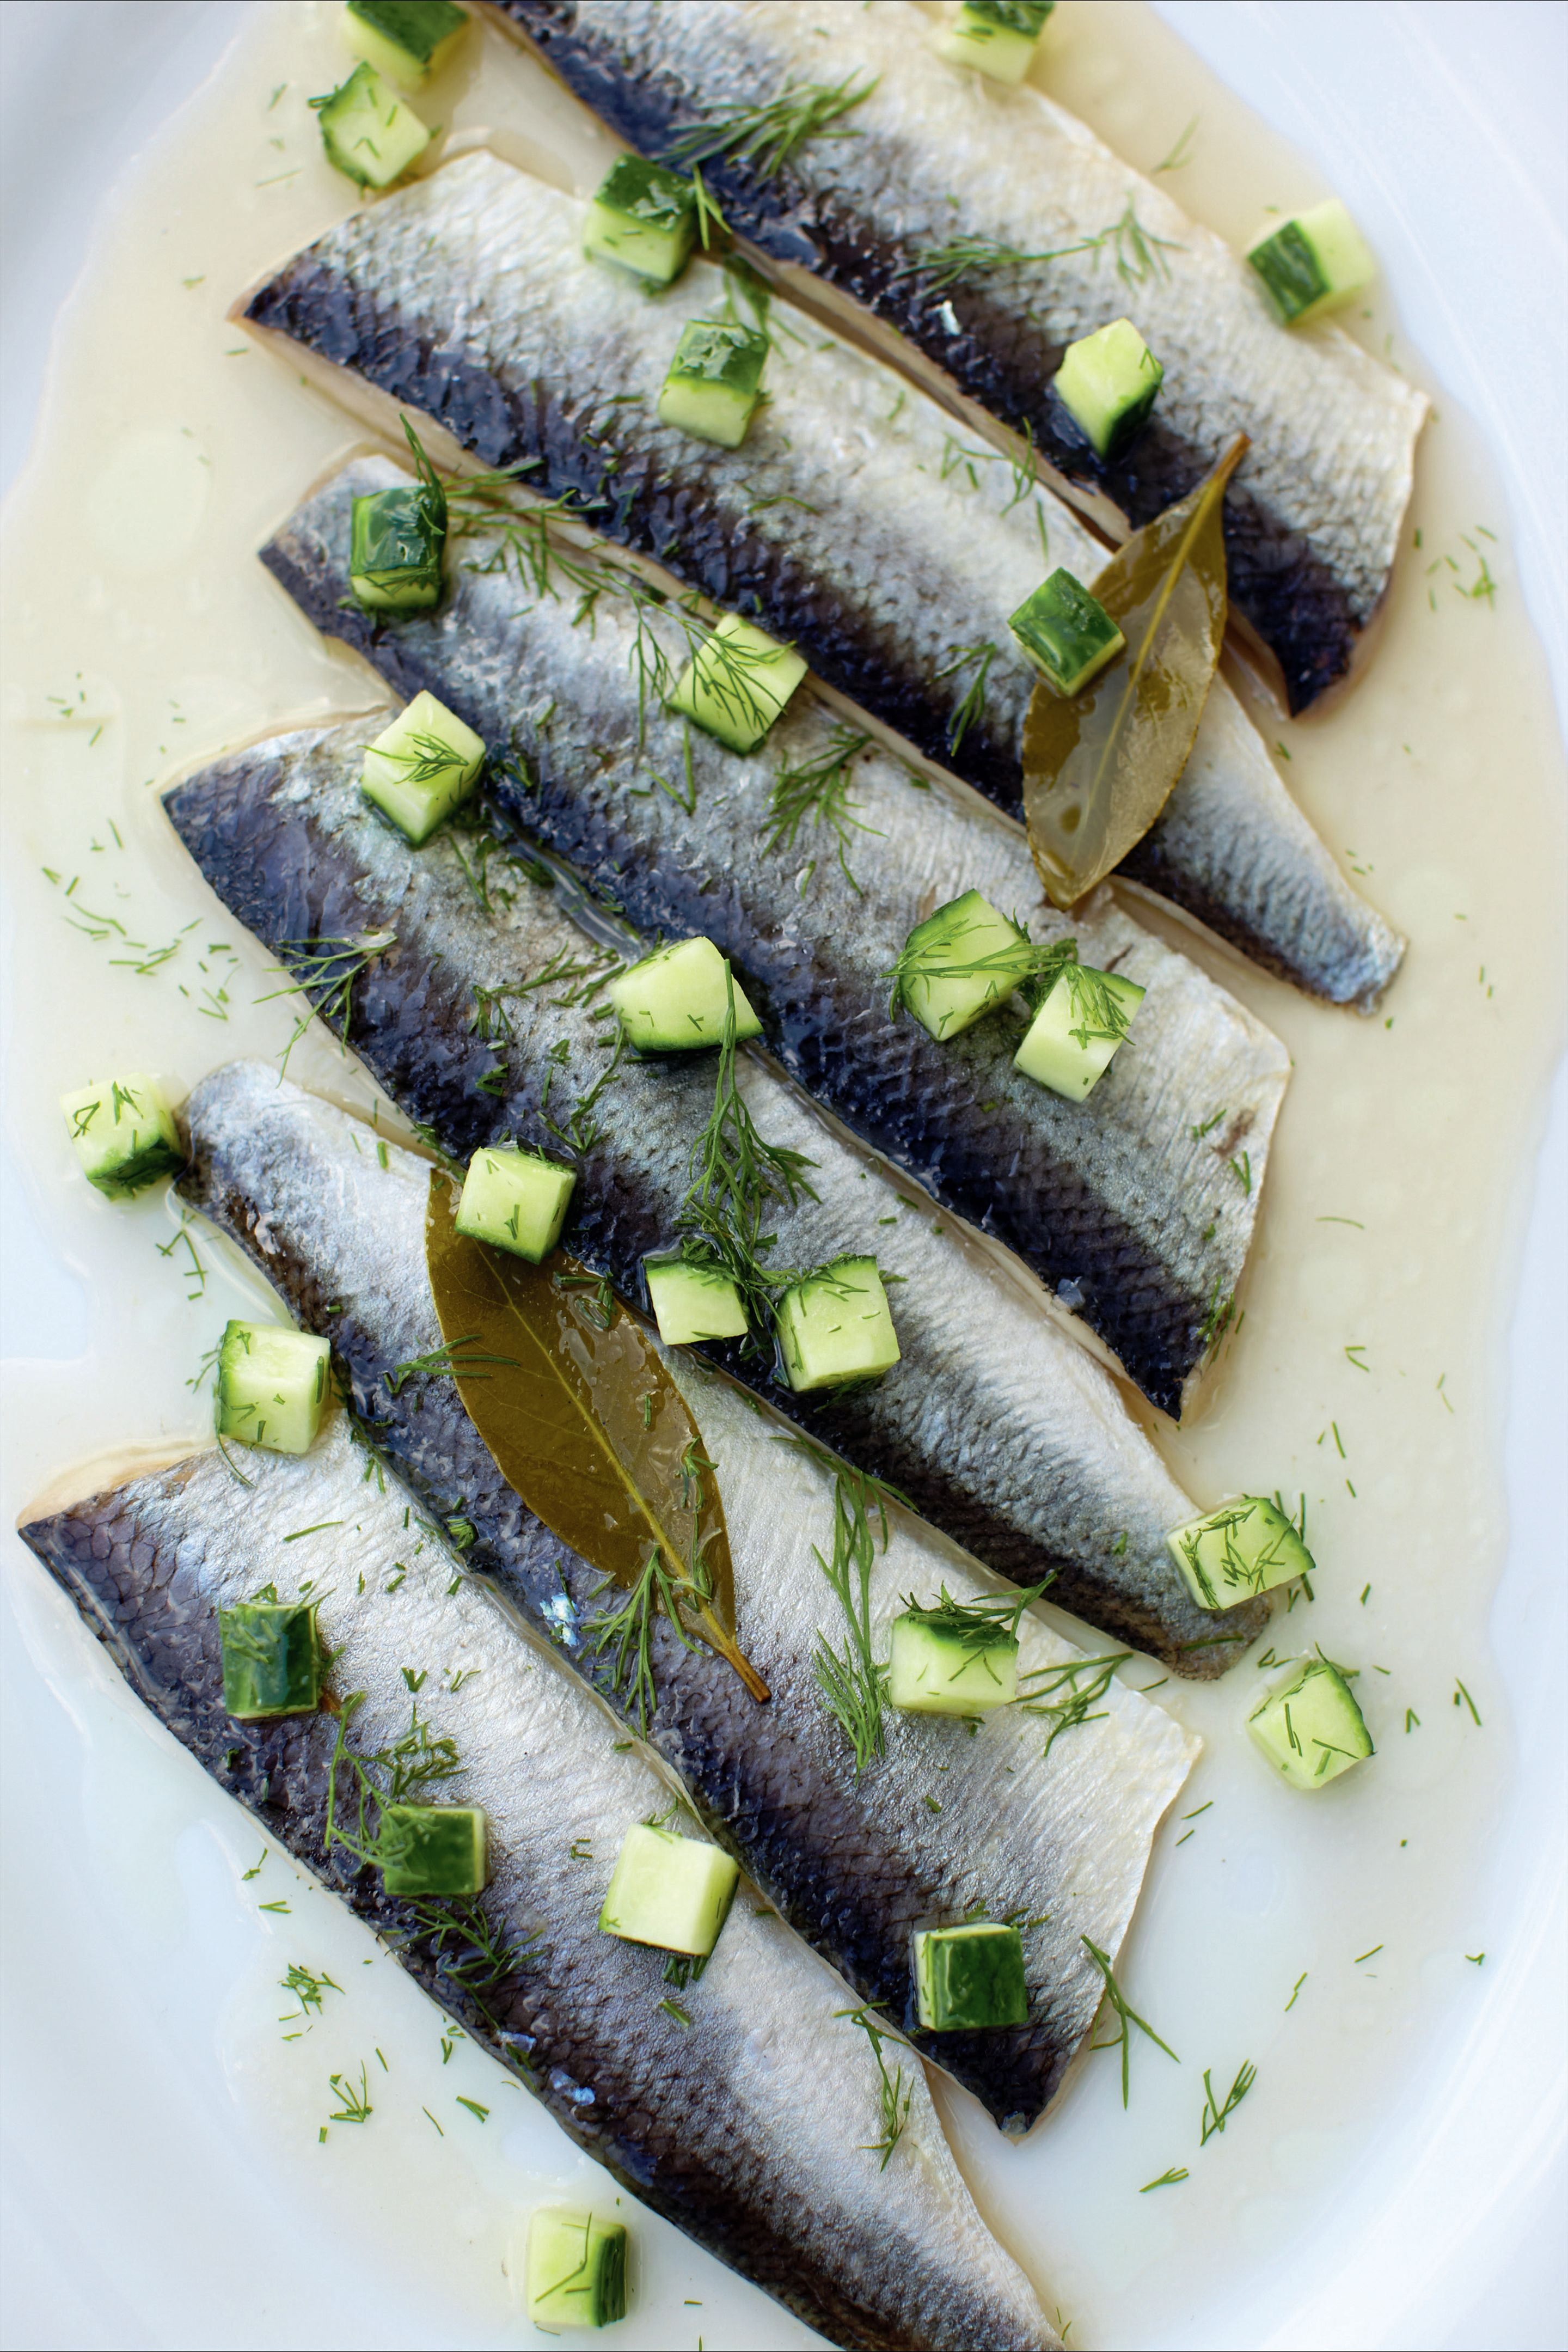 Pickled herrings with cucumber and dill